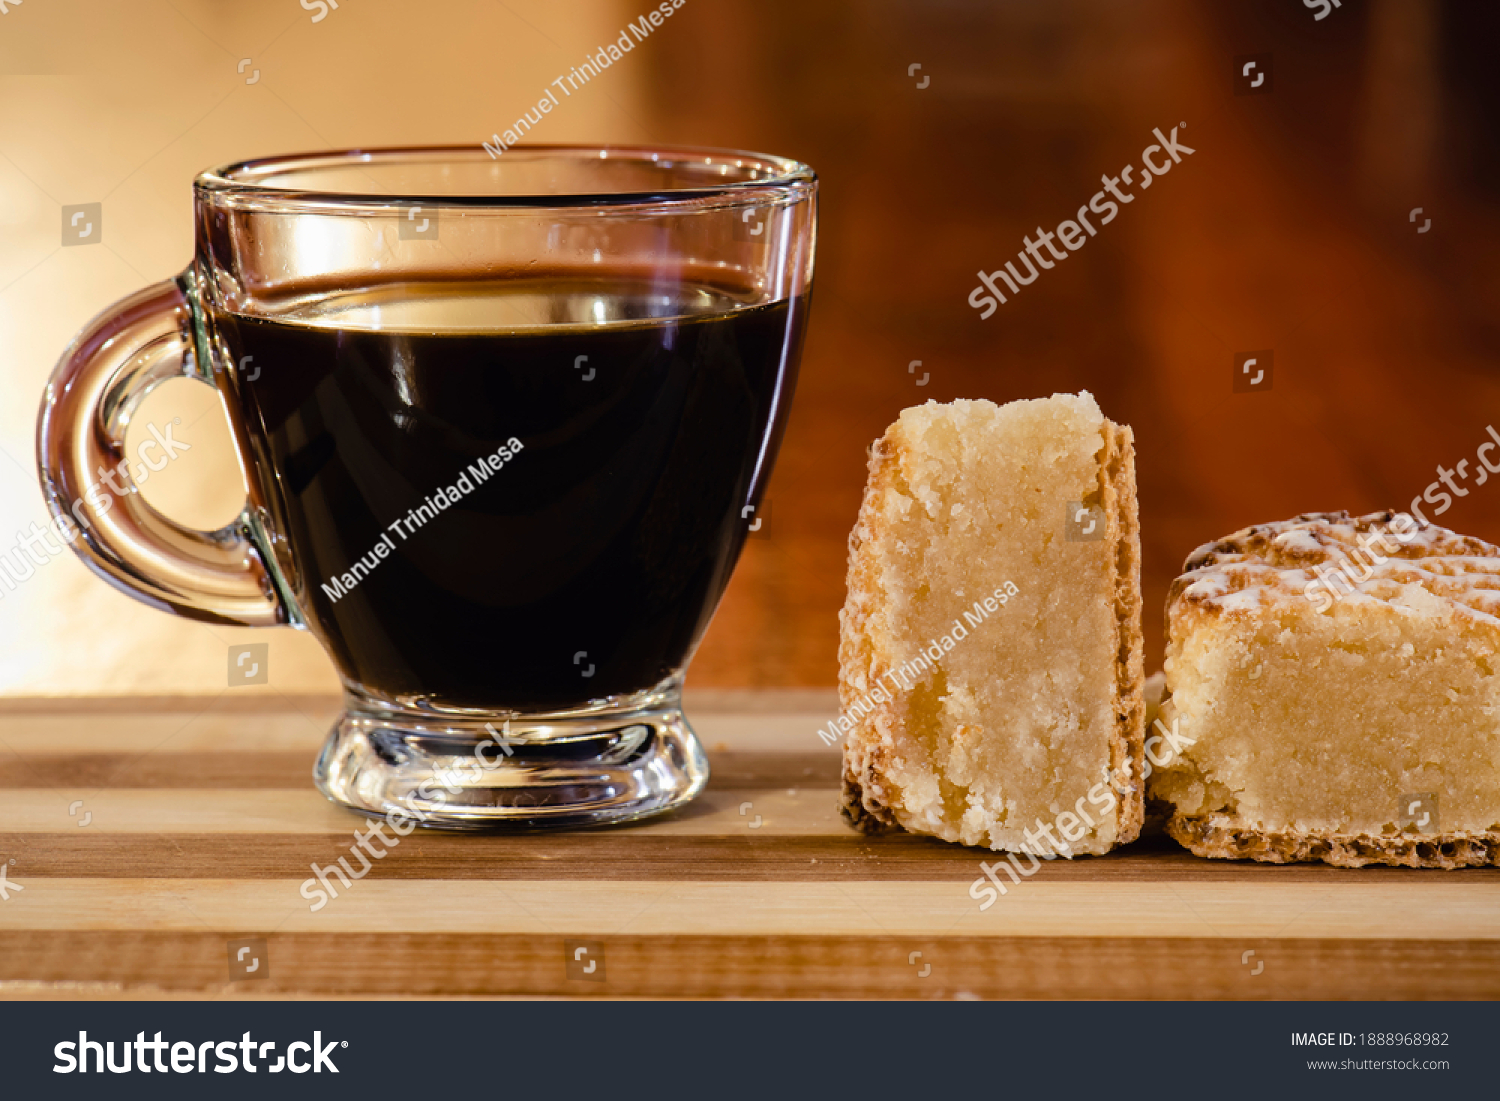 stock-photo-cup-of-coffee-next-to-marzip